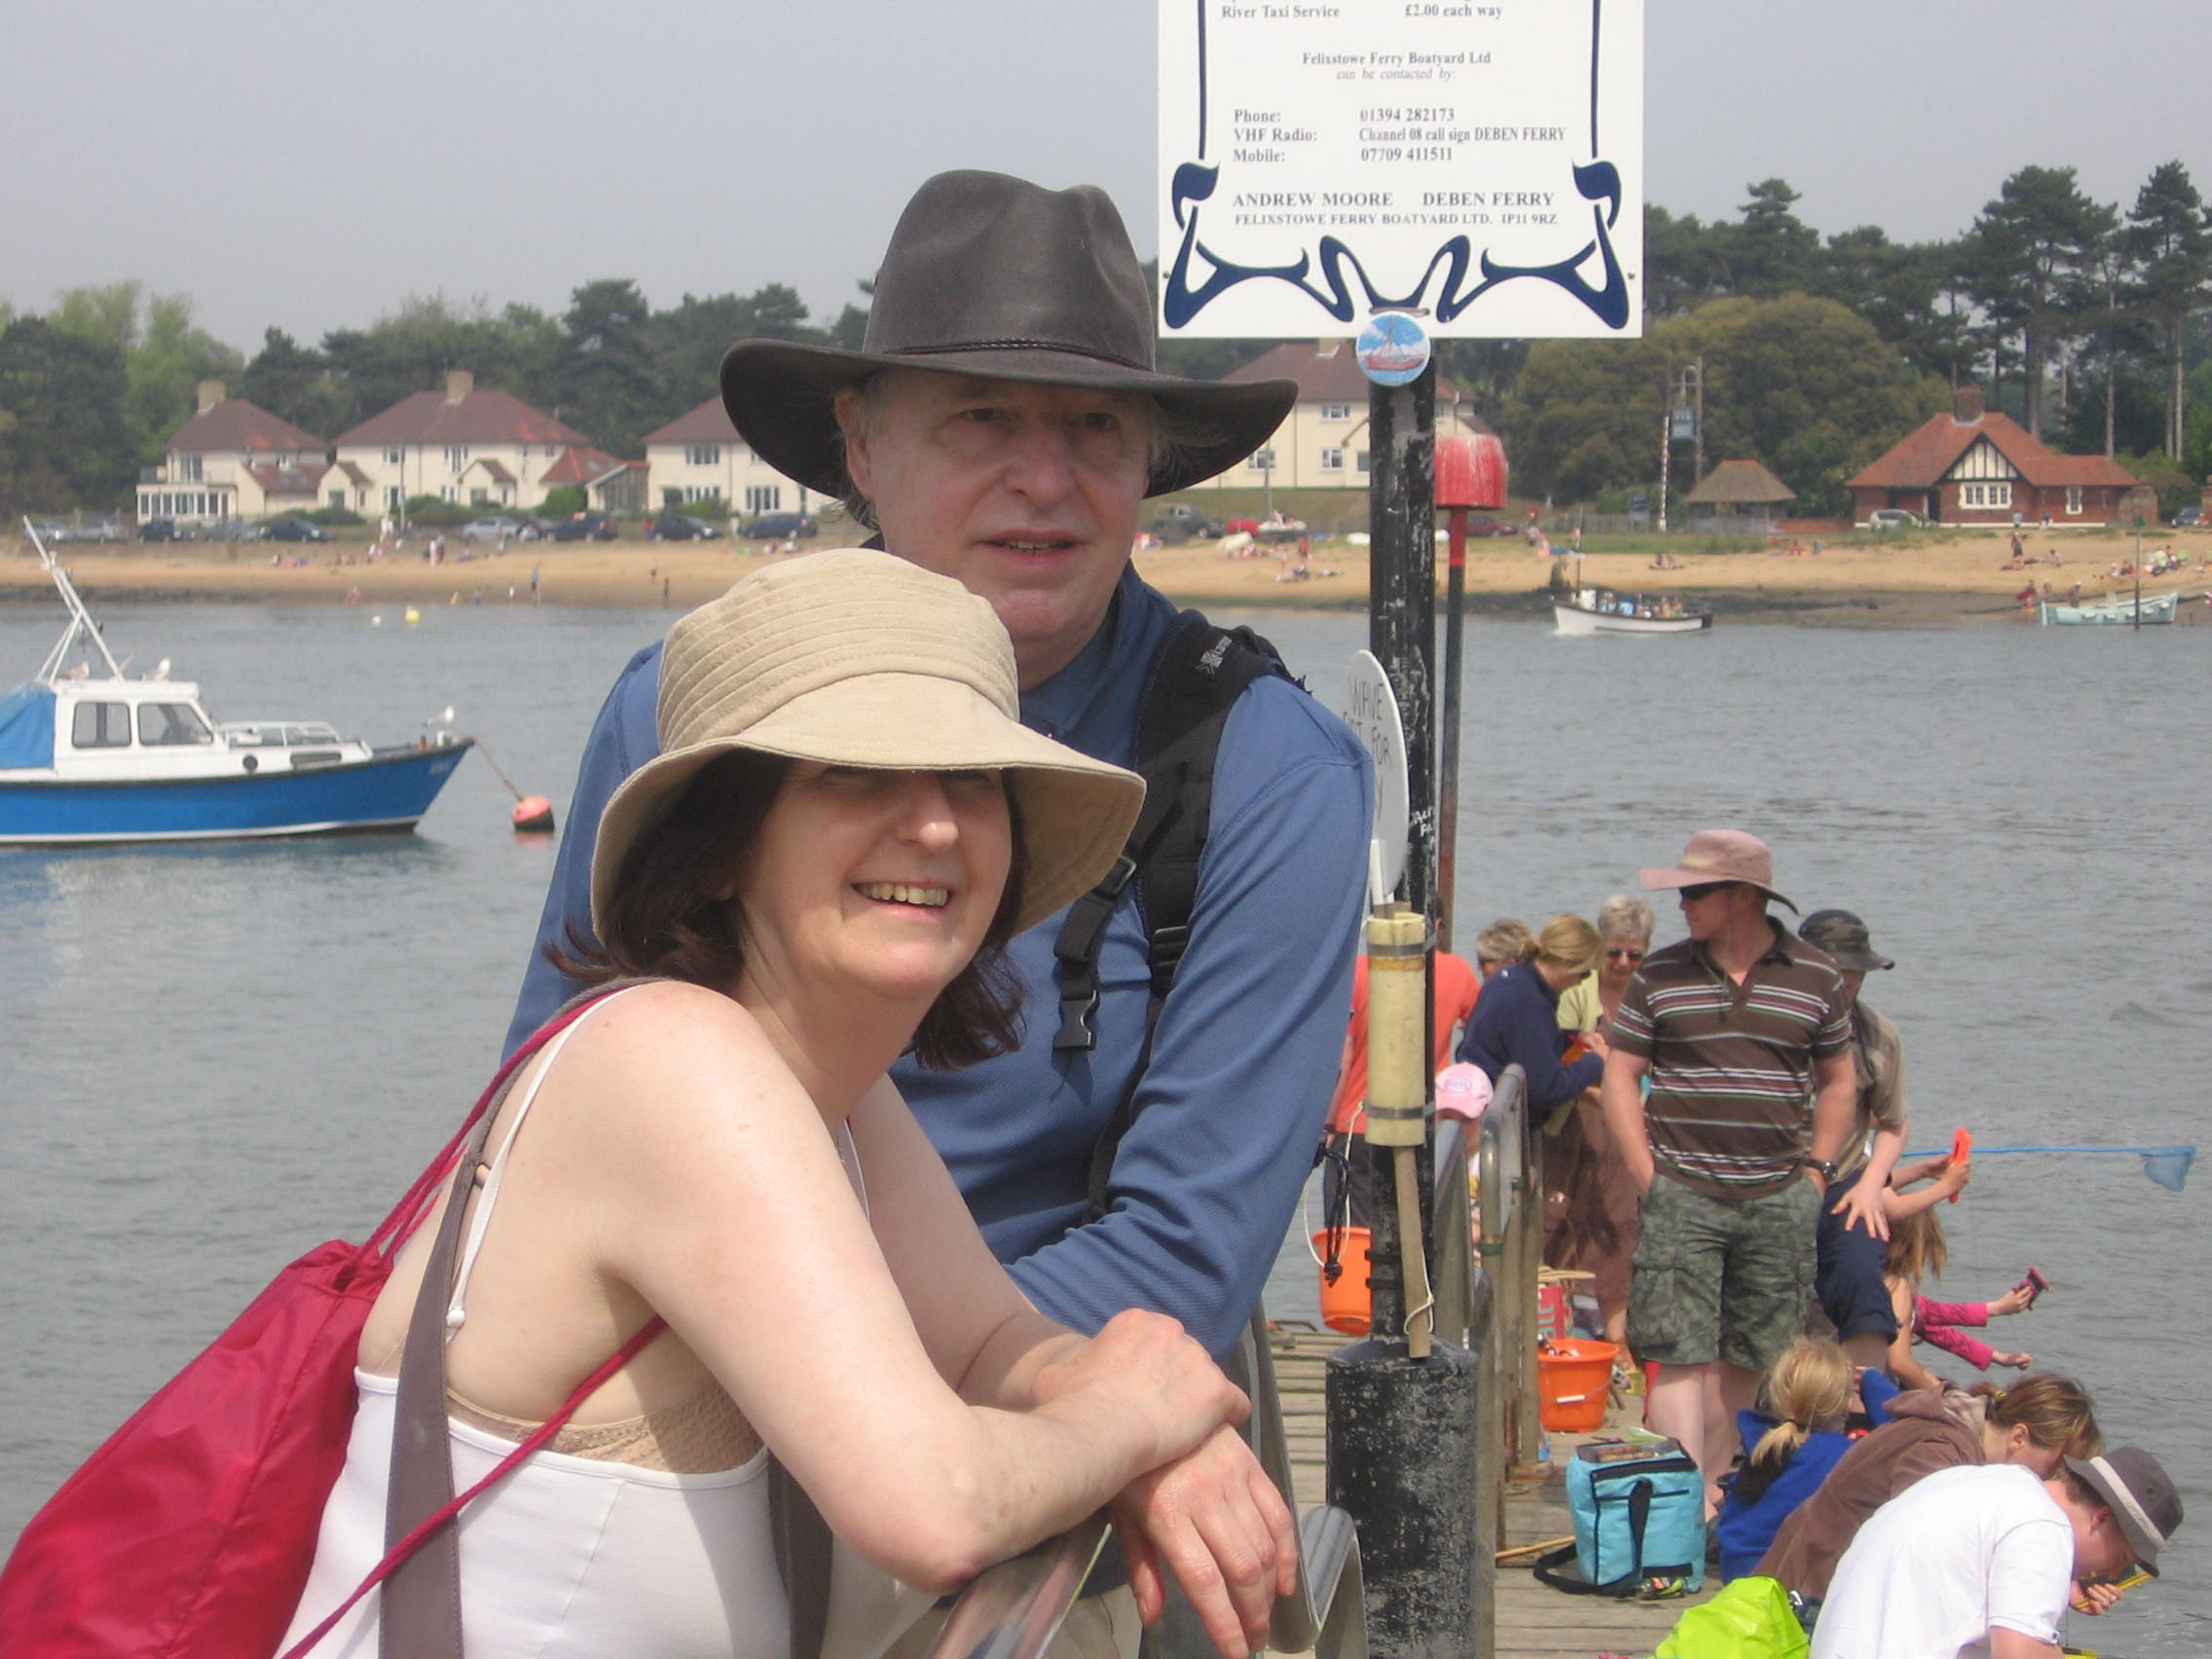 Richard with Jane on ferry at Deben in East Anglia